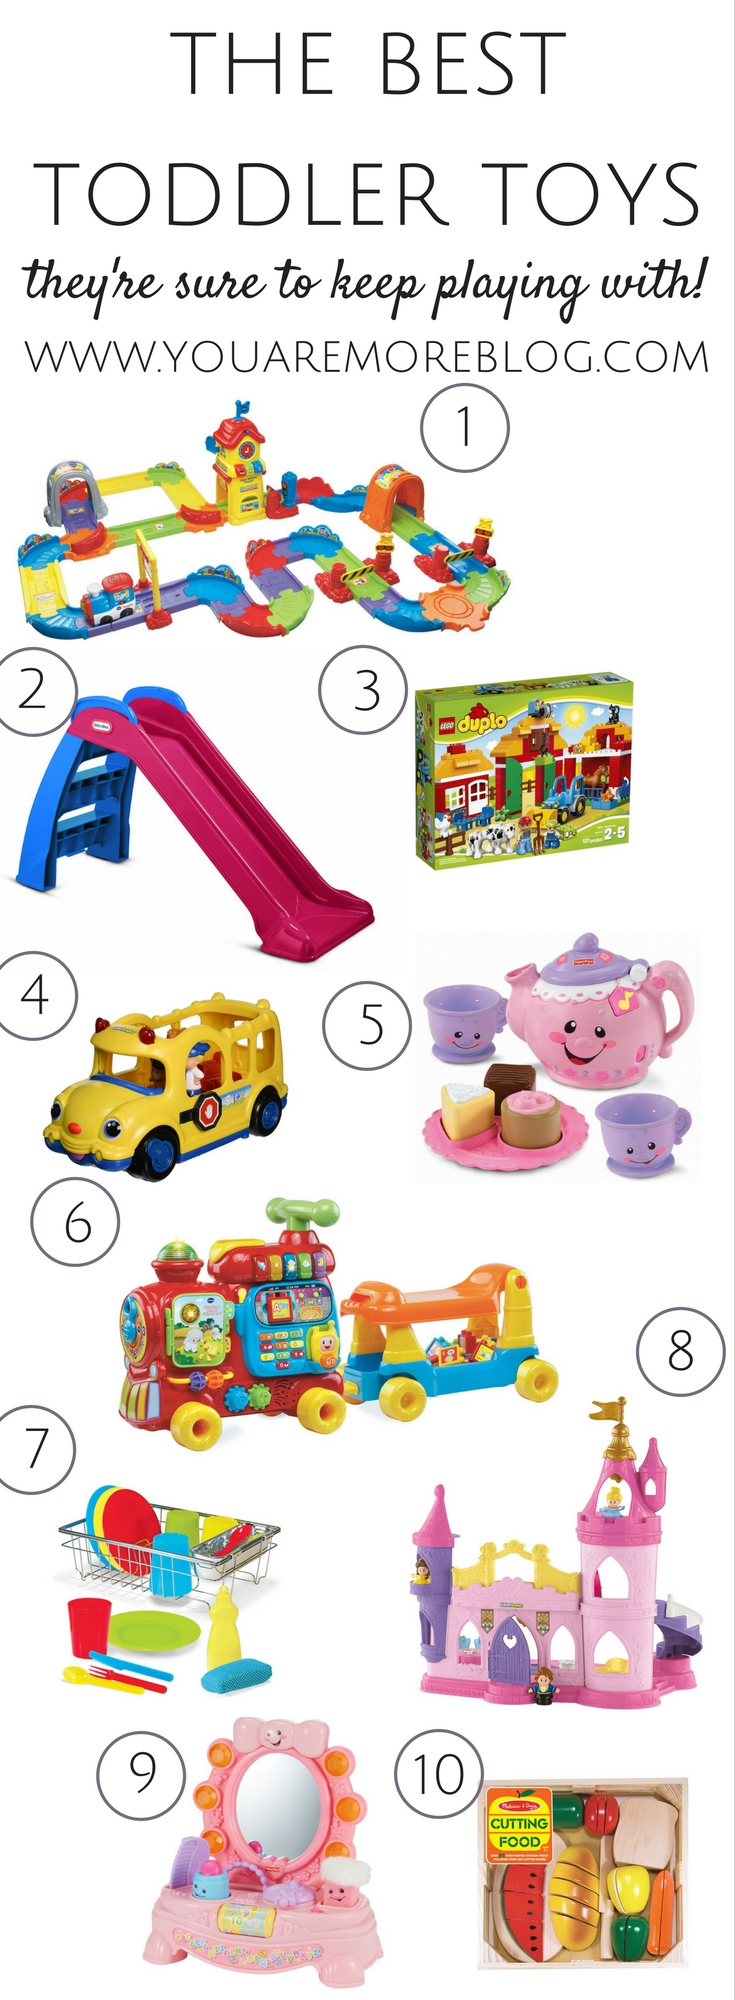 The best toddler toys they'll keep on playing with!